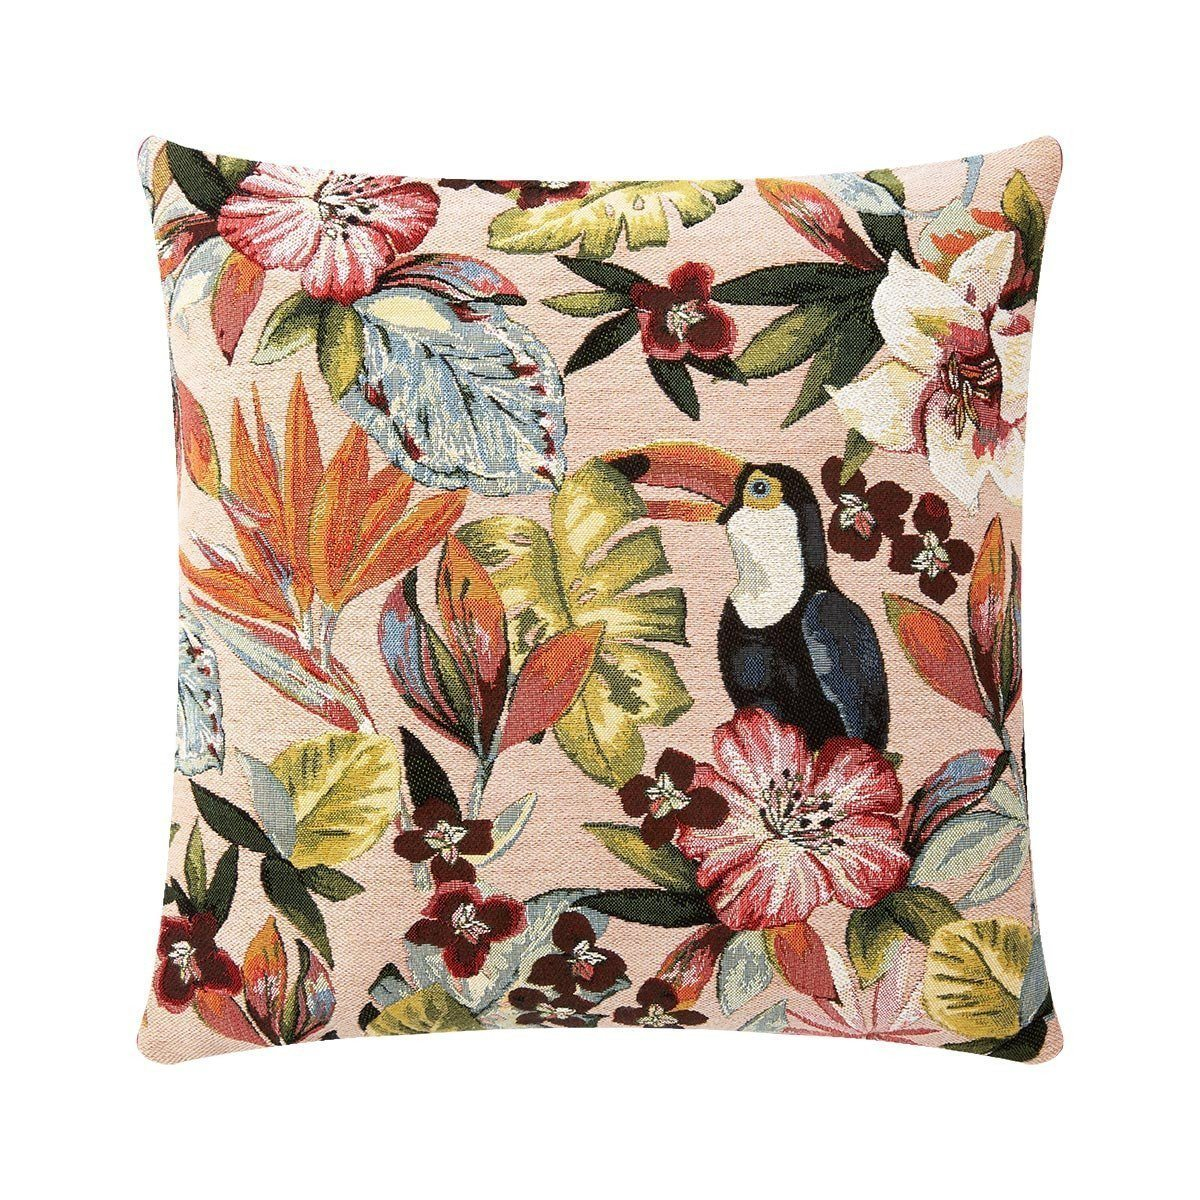 Utopia Goyave Decorative Pillow by Iosis